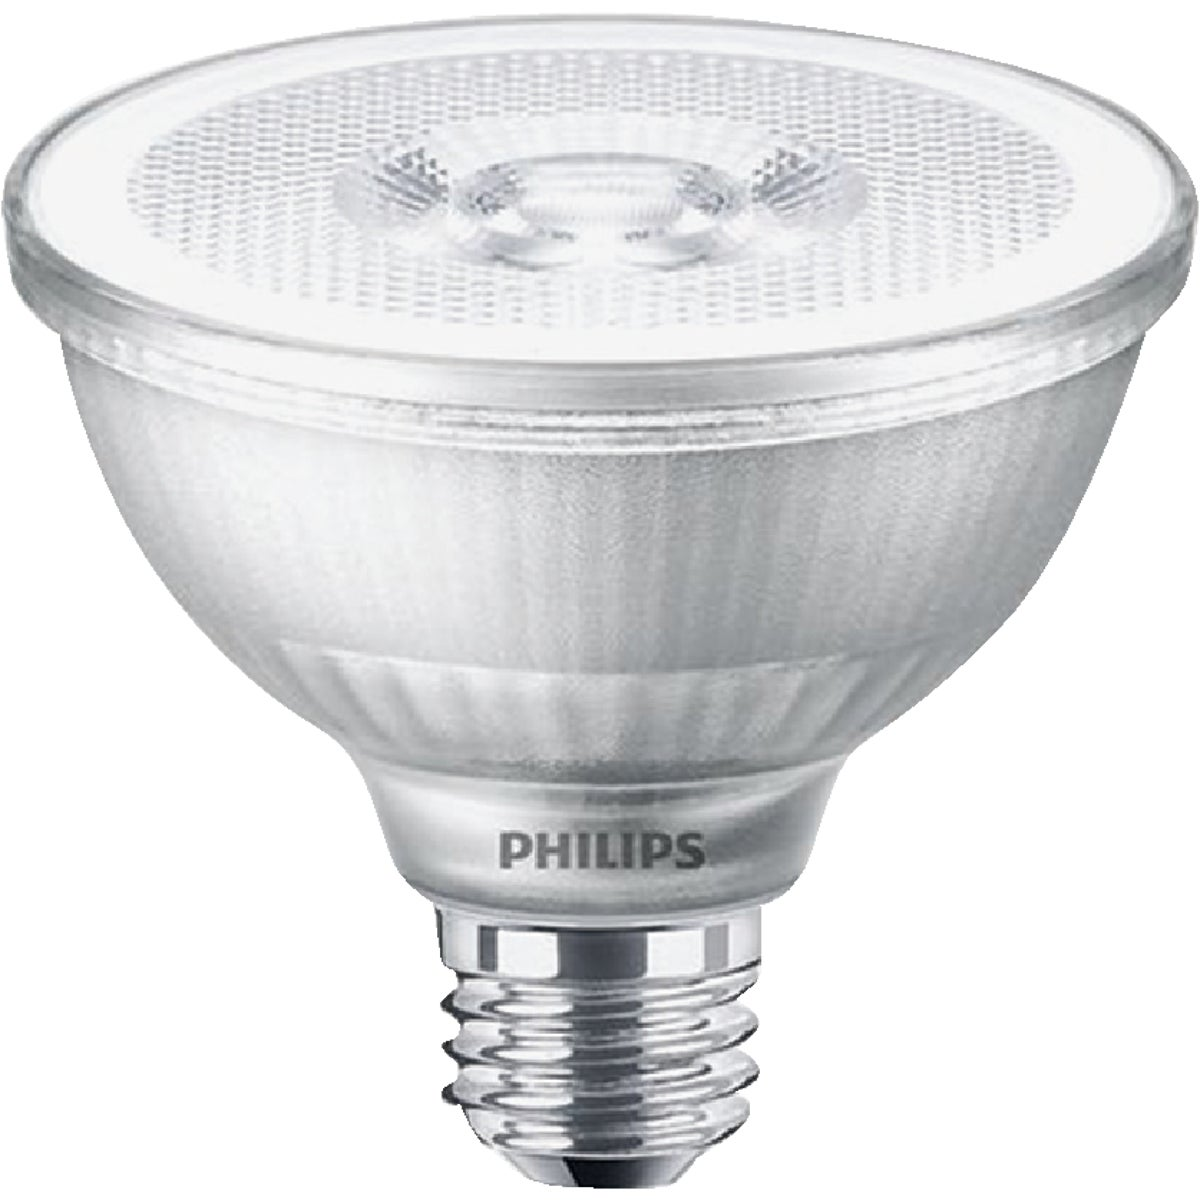 57W 130V IF LIGHT BULB - 72016 57A/IF PROLINE by G E Lighting Incom